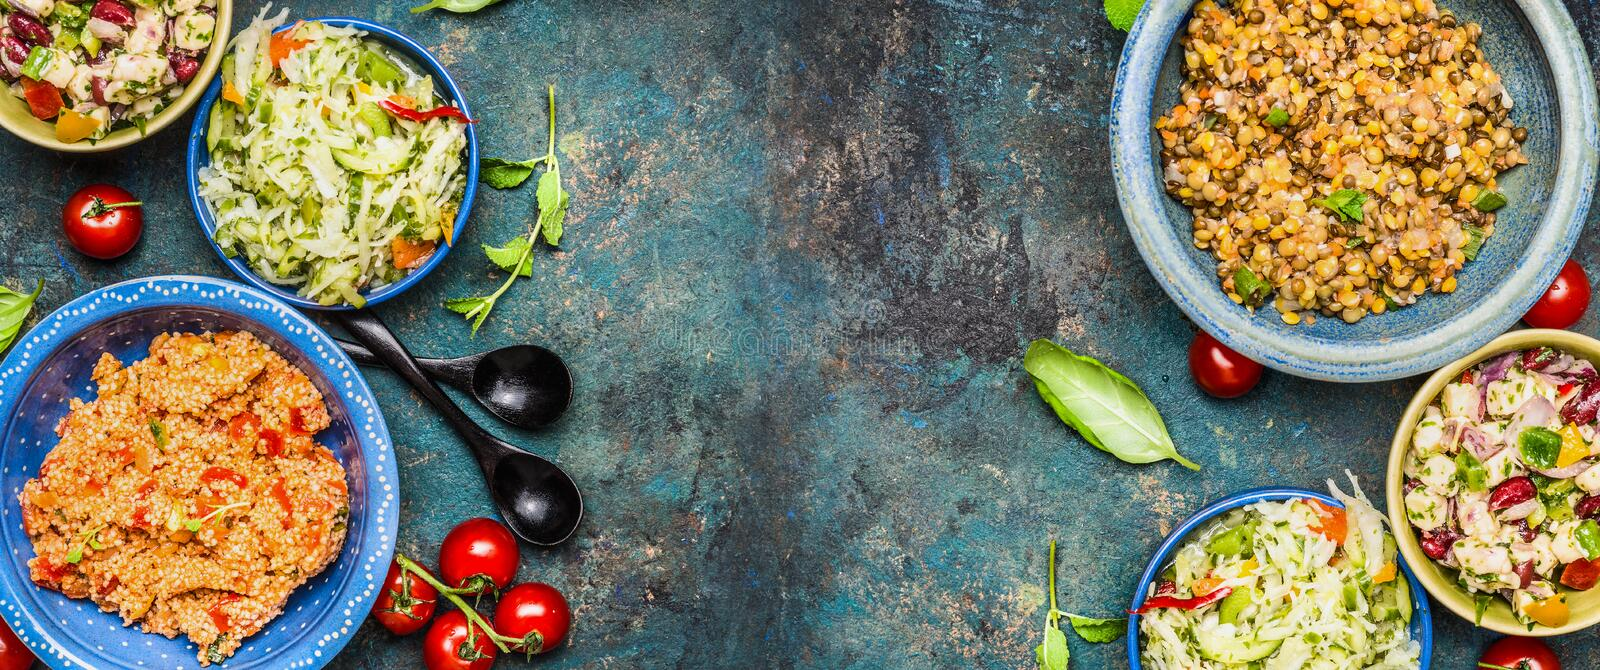 Healthy different salad bowls on dark vintage background. Country salads in rustic bowls. Salad bar, top view, banner. stock image